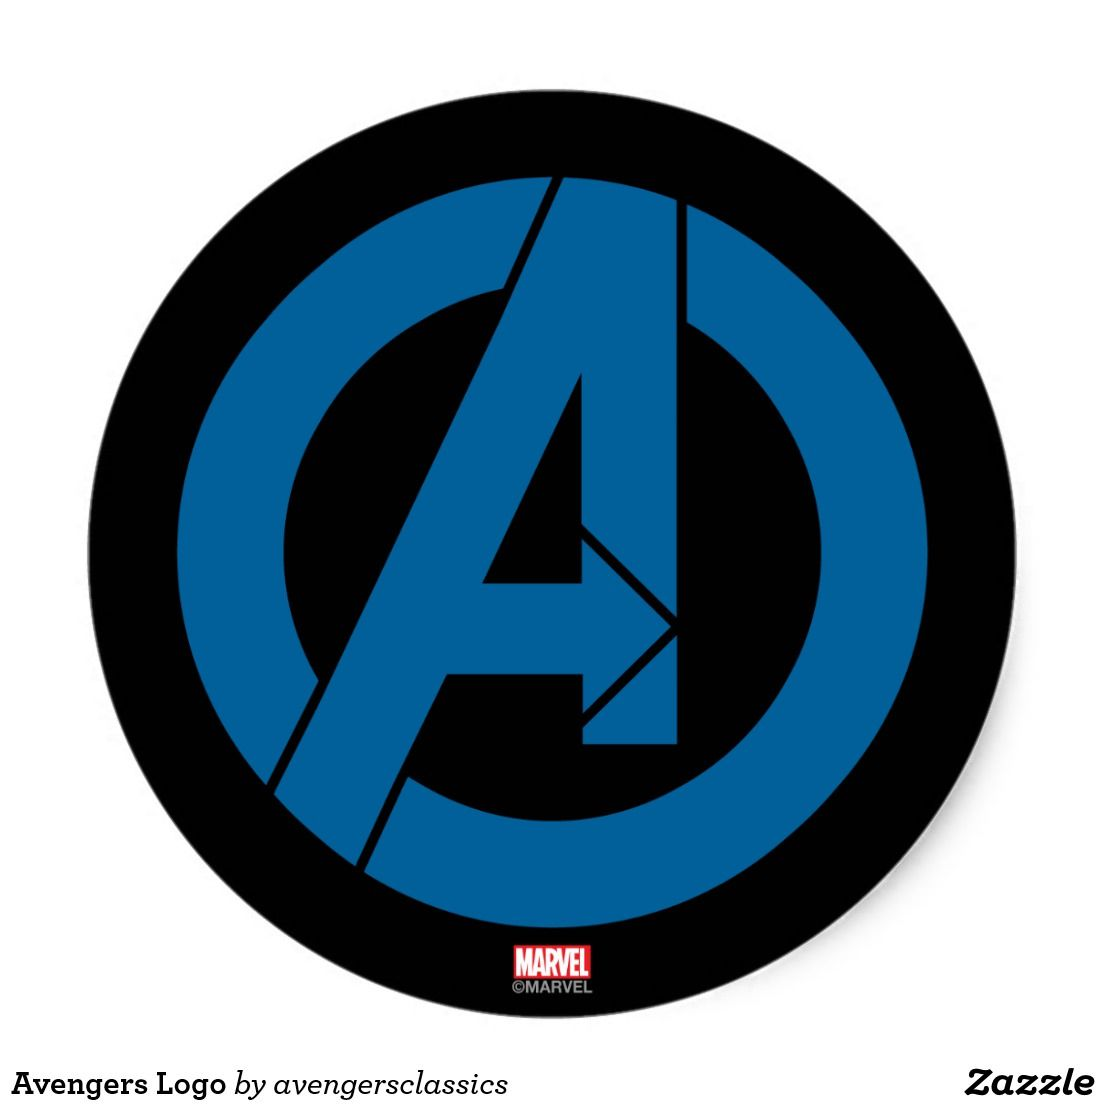 Avengers logo classic round sticker cool marvel merchandise to personalize marvel avengers birthday birthdayparty birthdaycard personalize kids